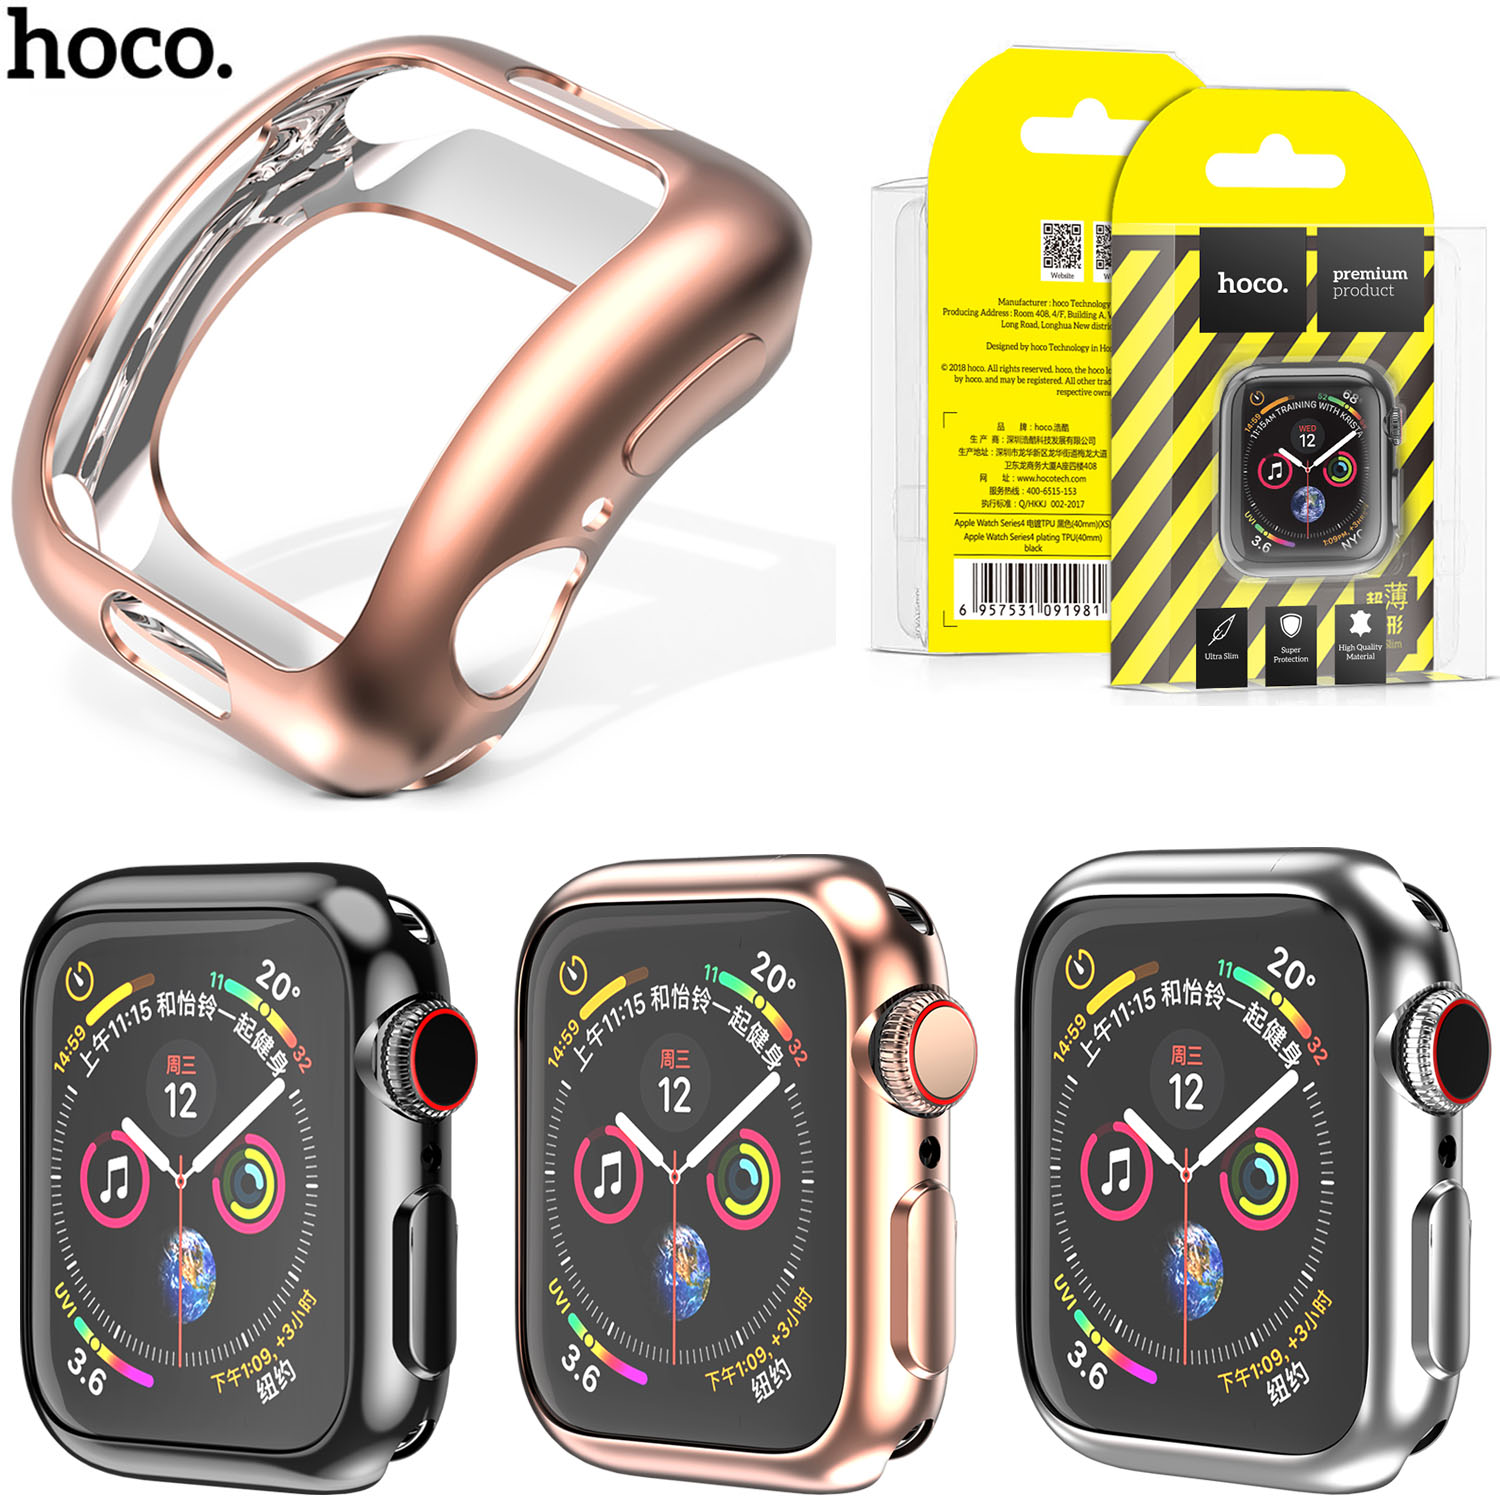 HOCO Soft TPU Silicone Cover for <font><b>Apple</b></font> <font><b>Watch</b></font> <font><b>44mm</b></font> 40mm Case iWatch <font><b>Series</b></font> 4 <font><b>Series</b></font> <font><b>5</b></font> Cover Protective Shell image